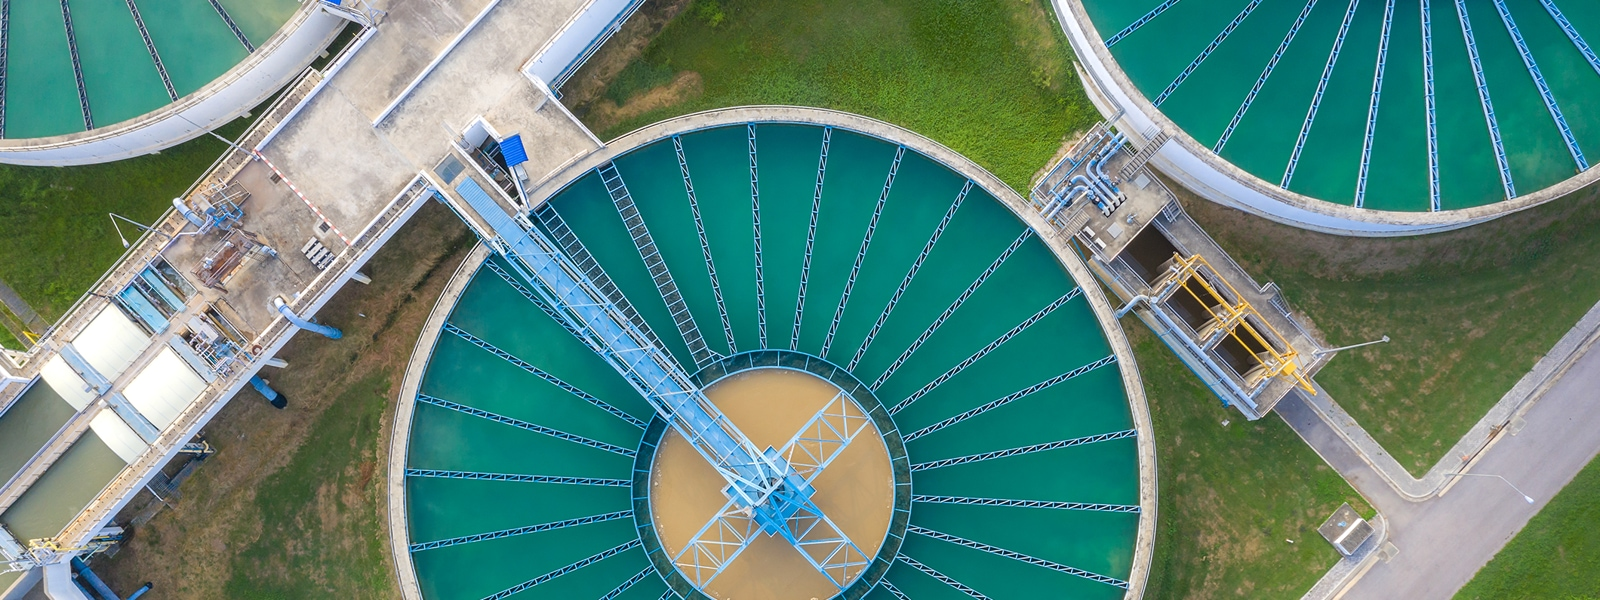 Water treatment plant viewed from above.